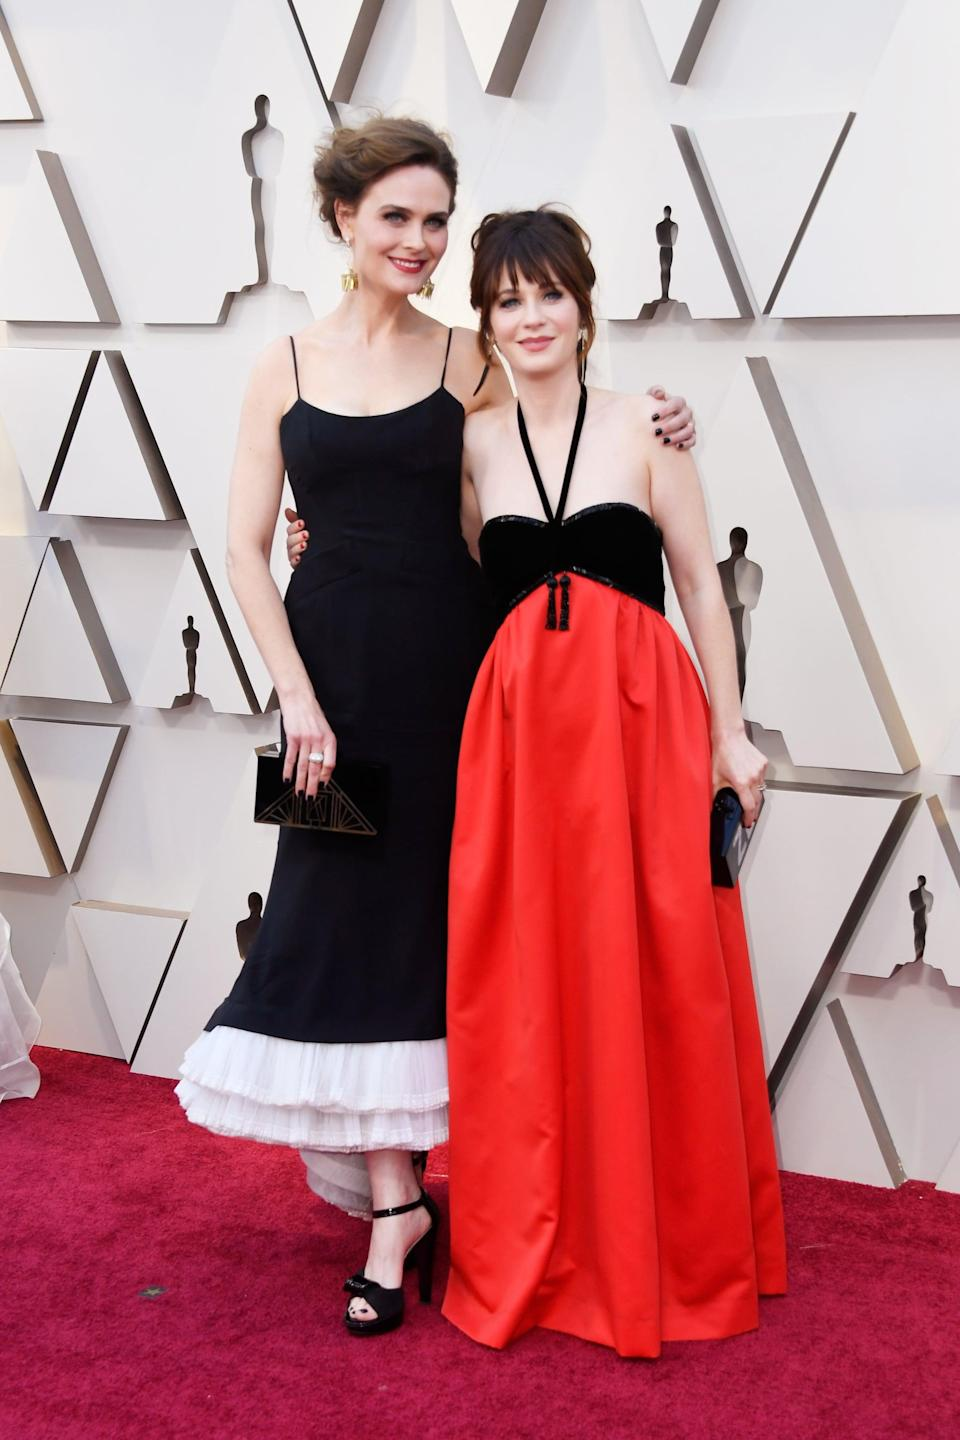 <p>Emily is wearing a vintage 1996 Dior dress with Neil Lane jewels, and Zooey is wearing a colorblock halter-style dress.</p>